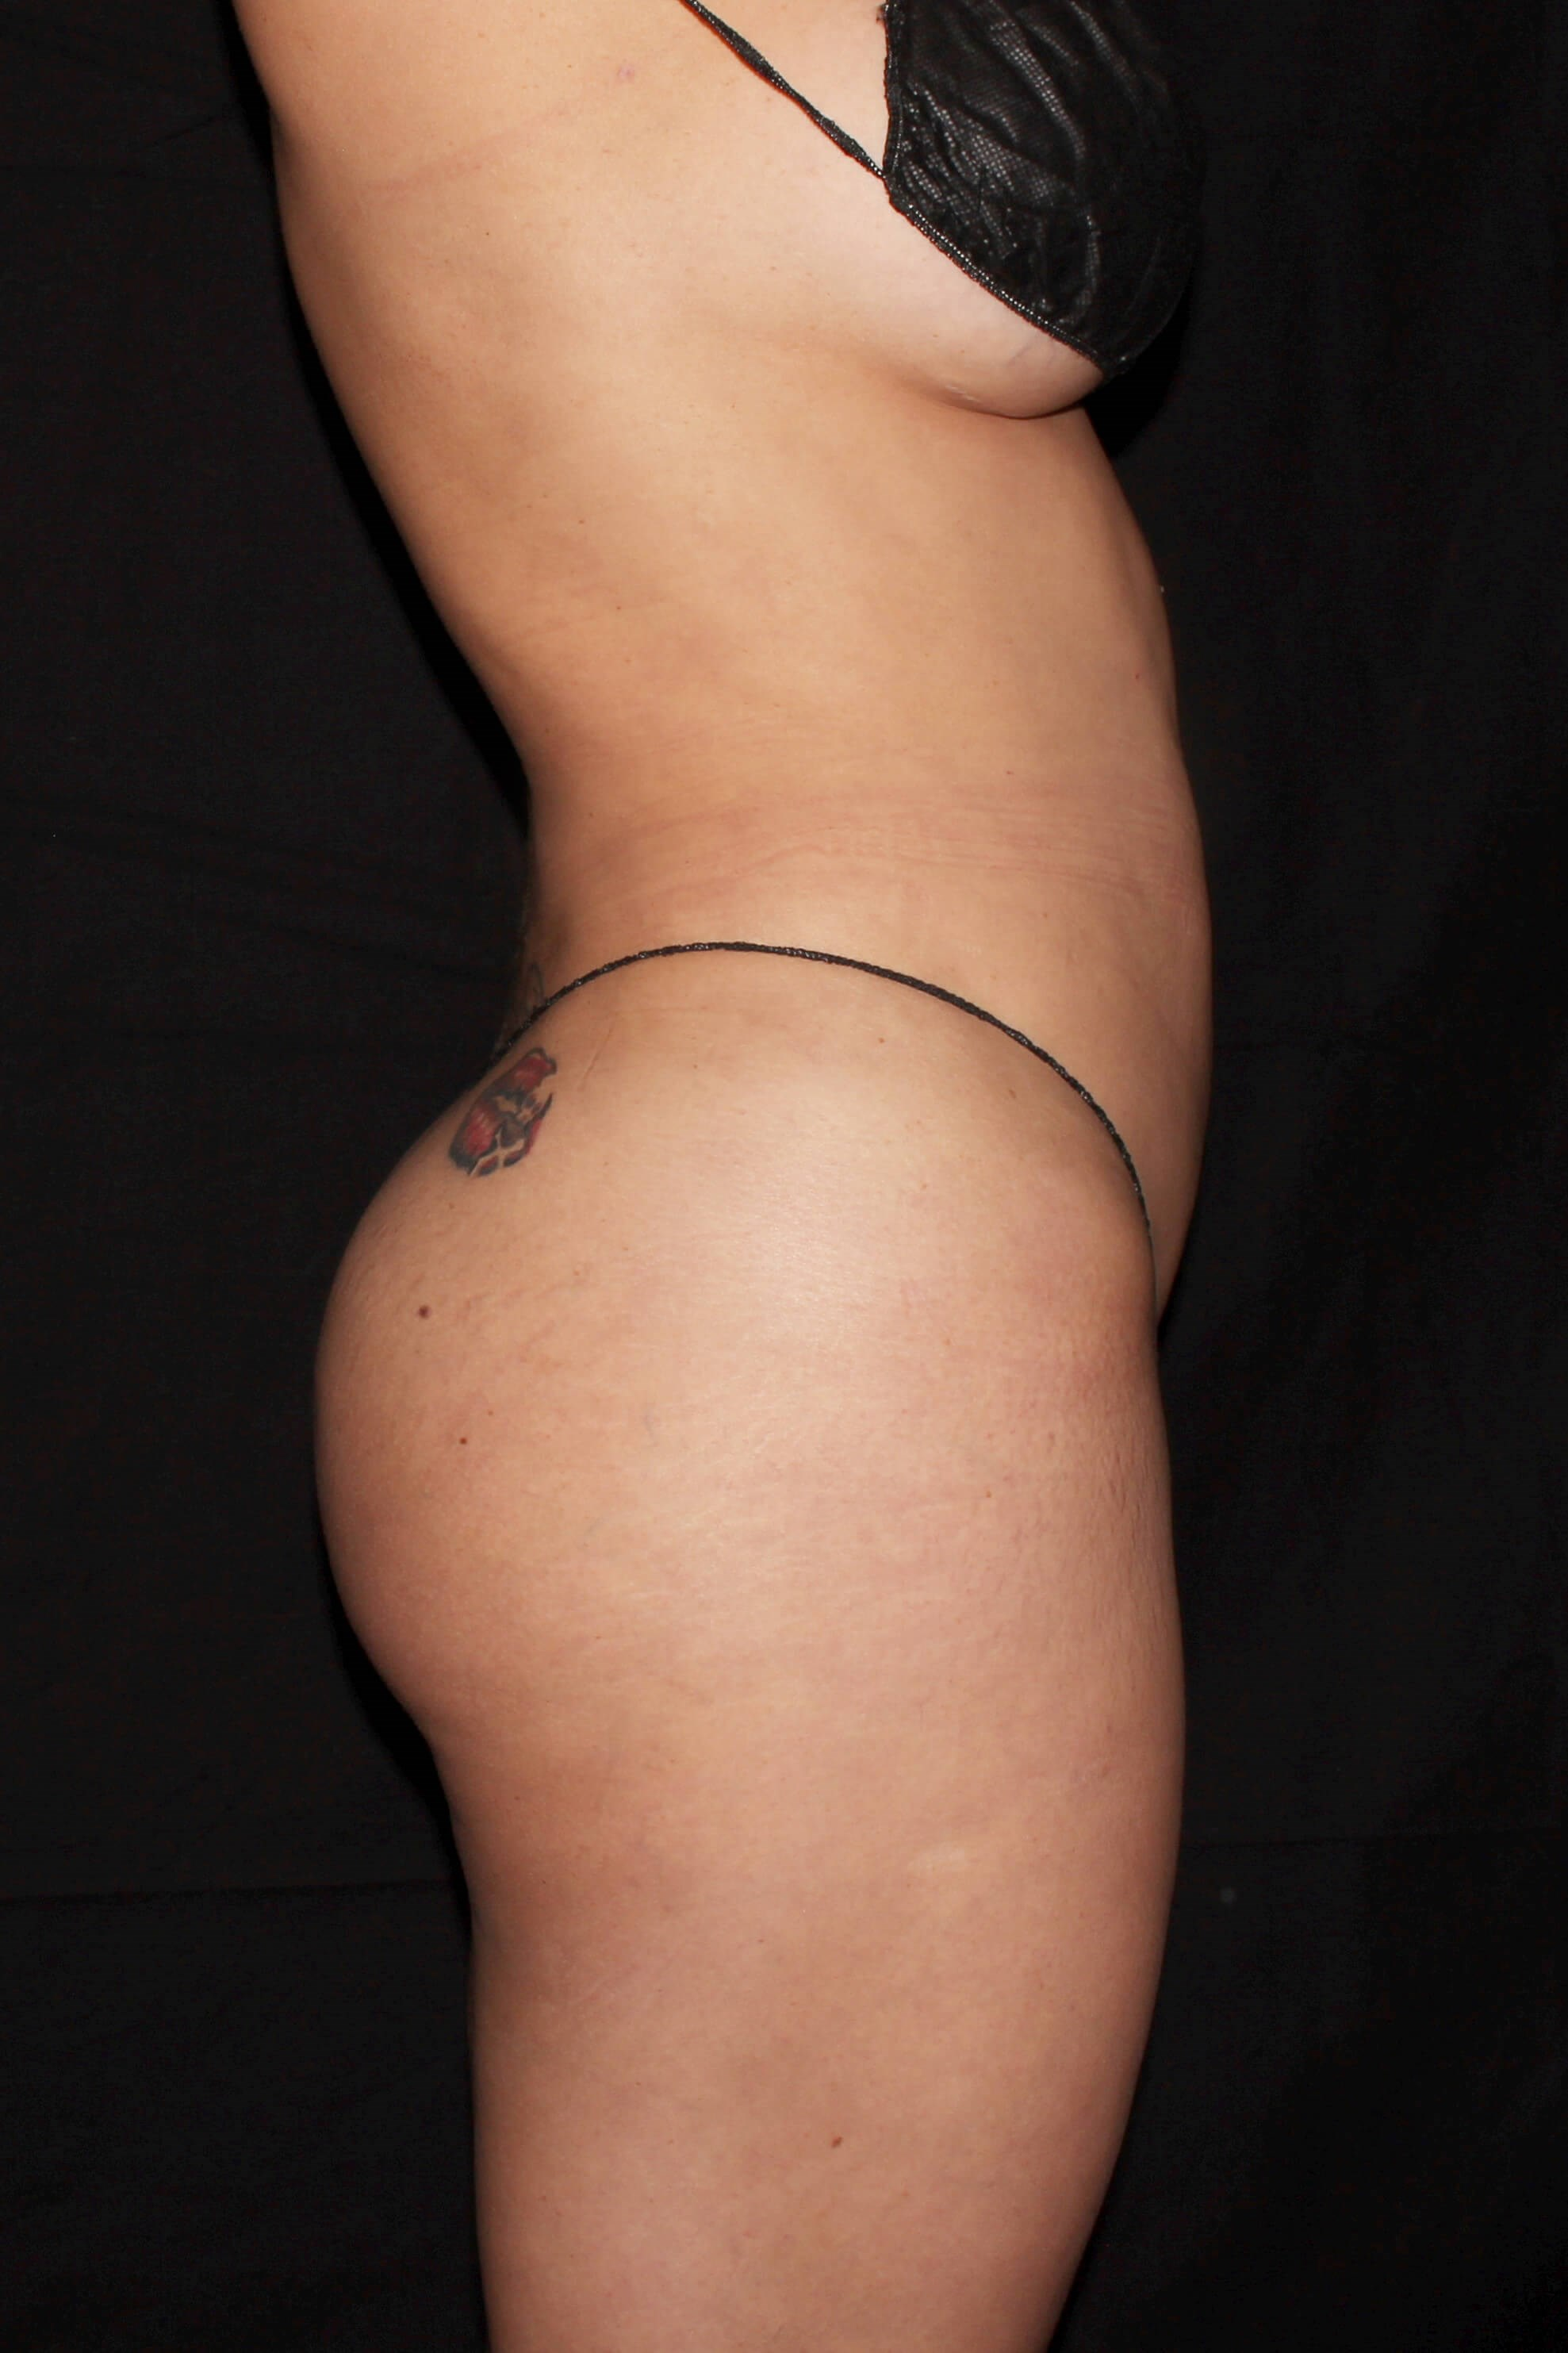 After Liposuction - Right View